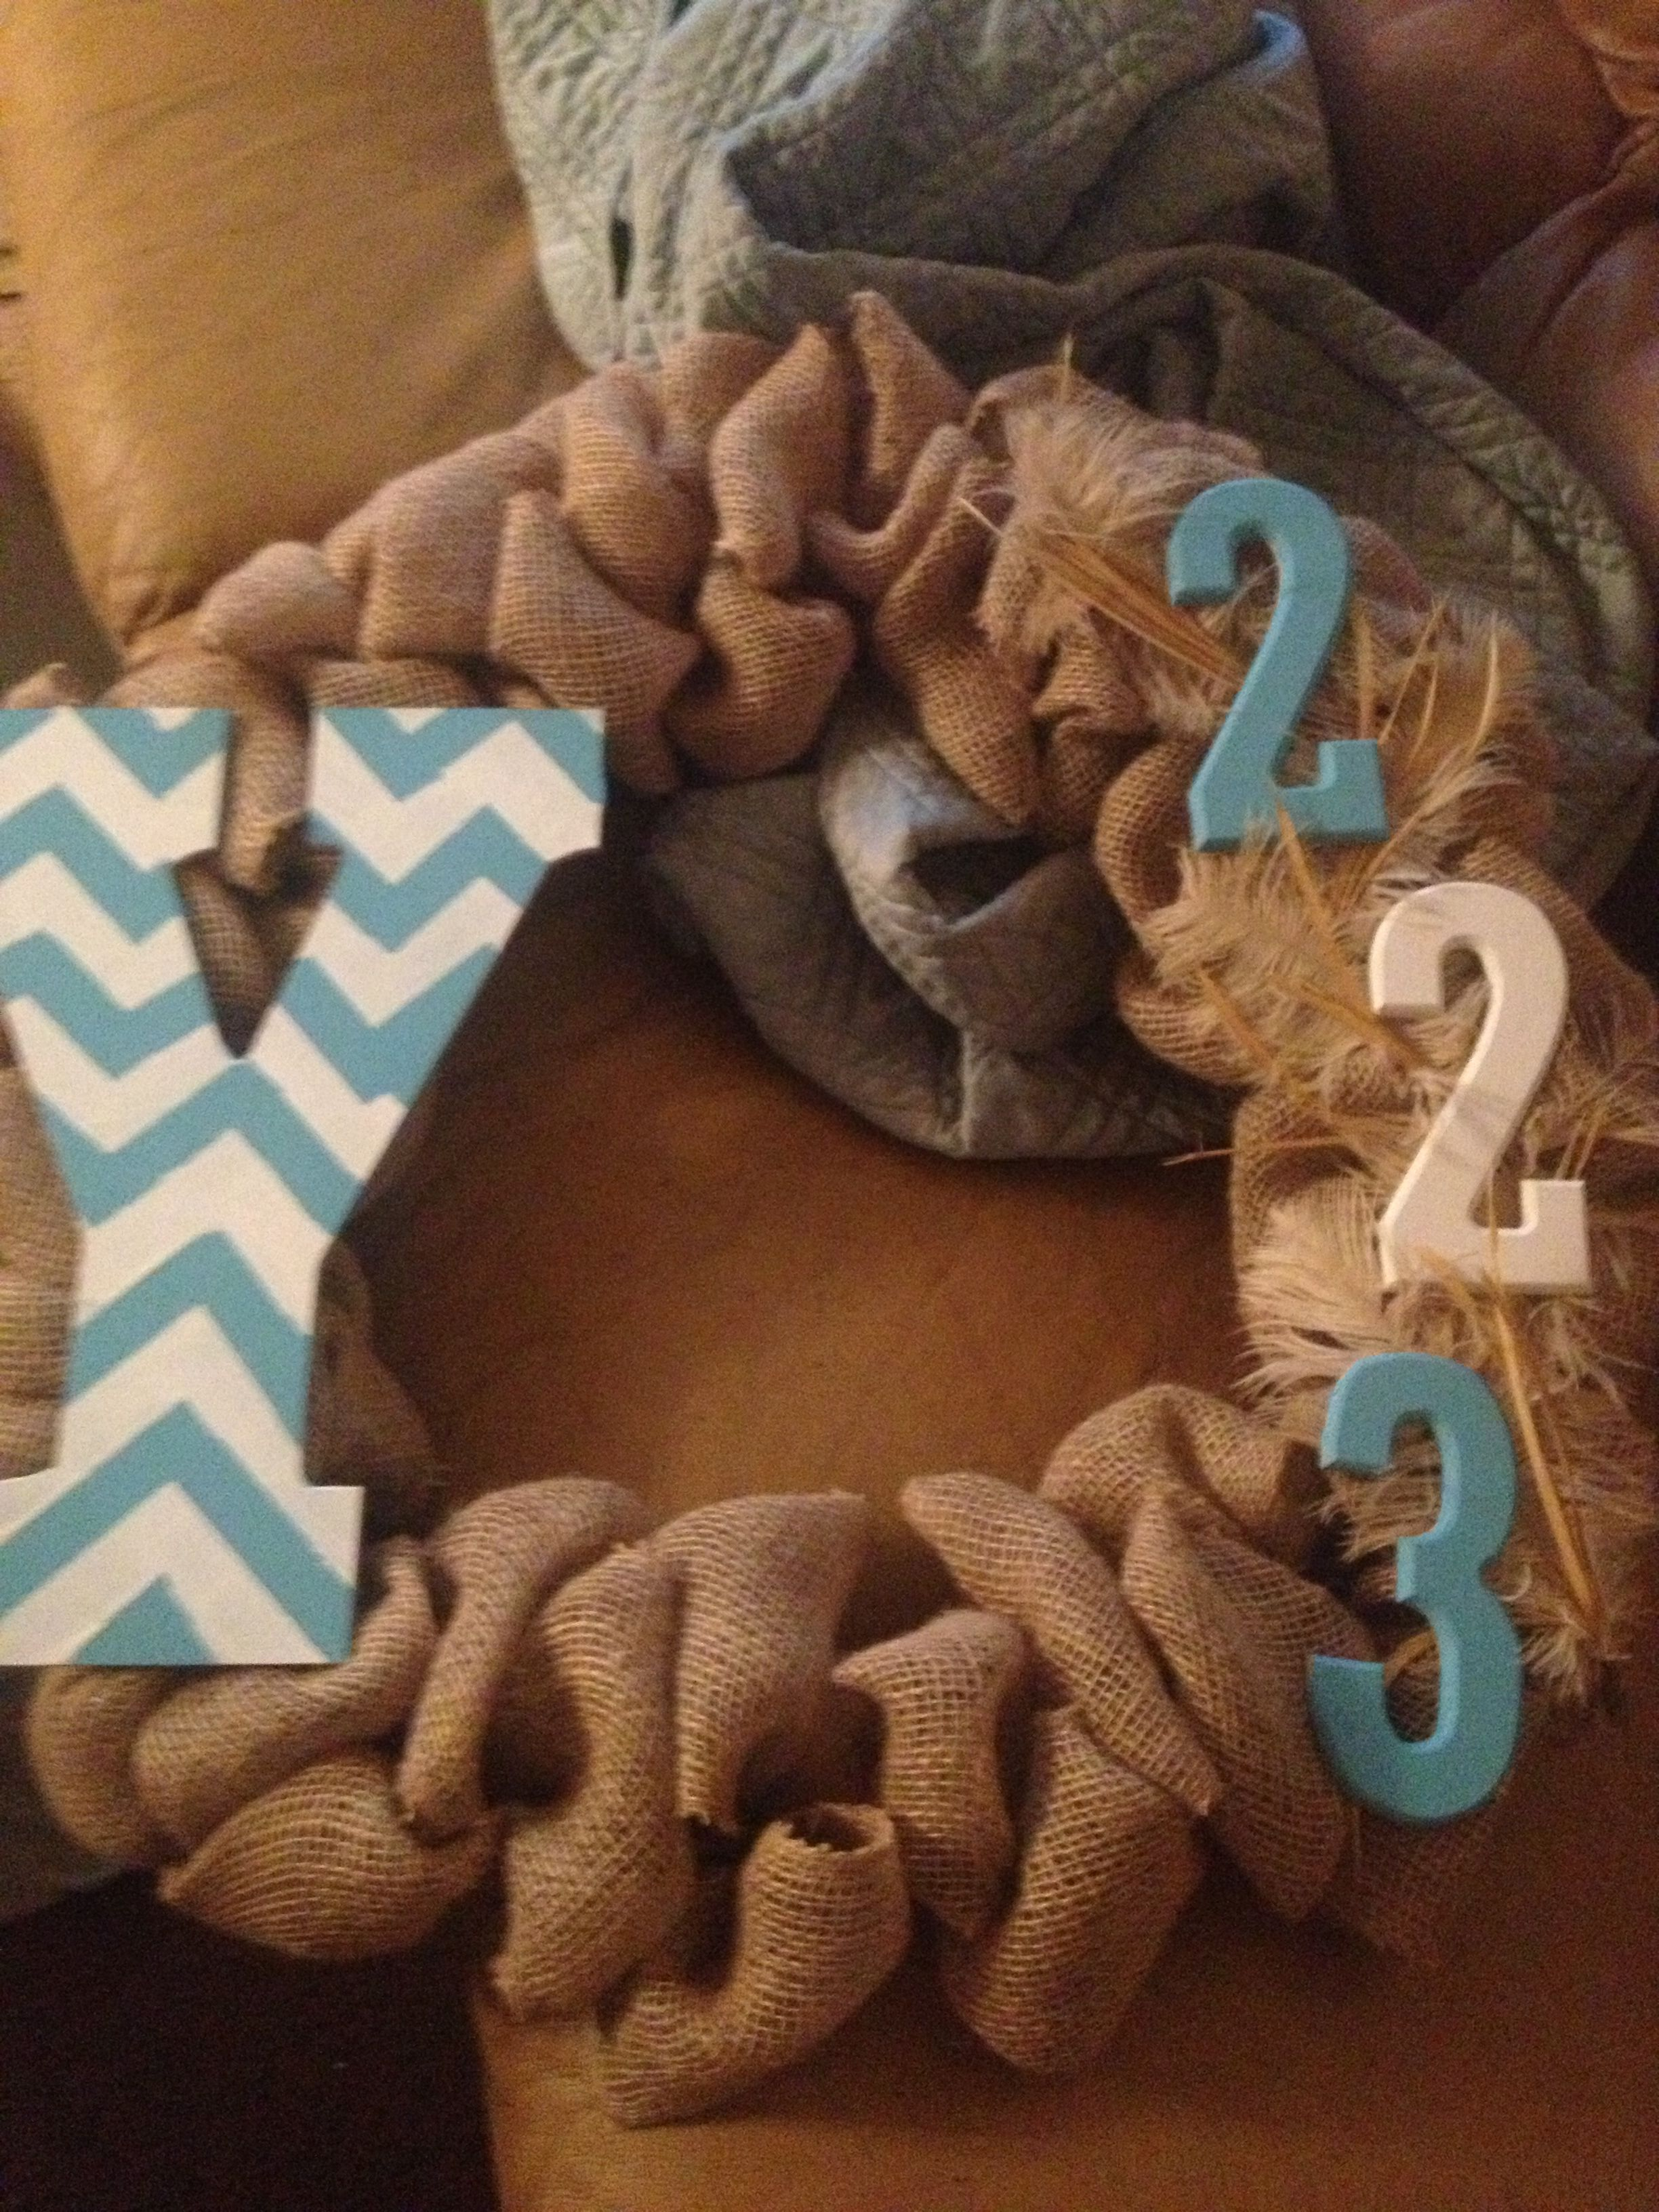 My new wreath for our new apt....last name initial and address :)